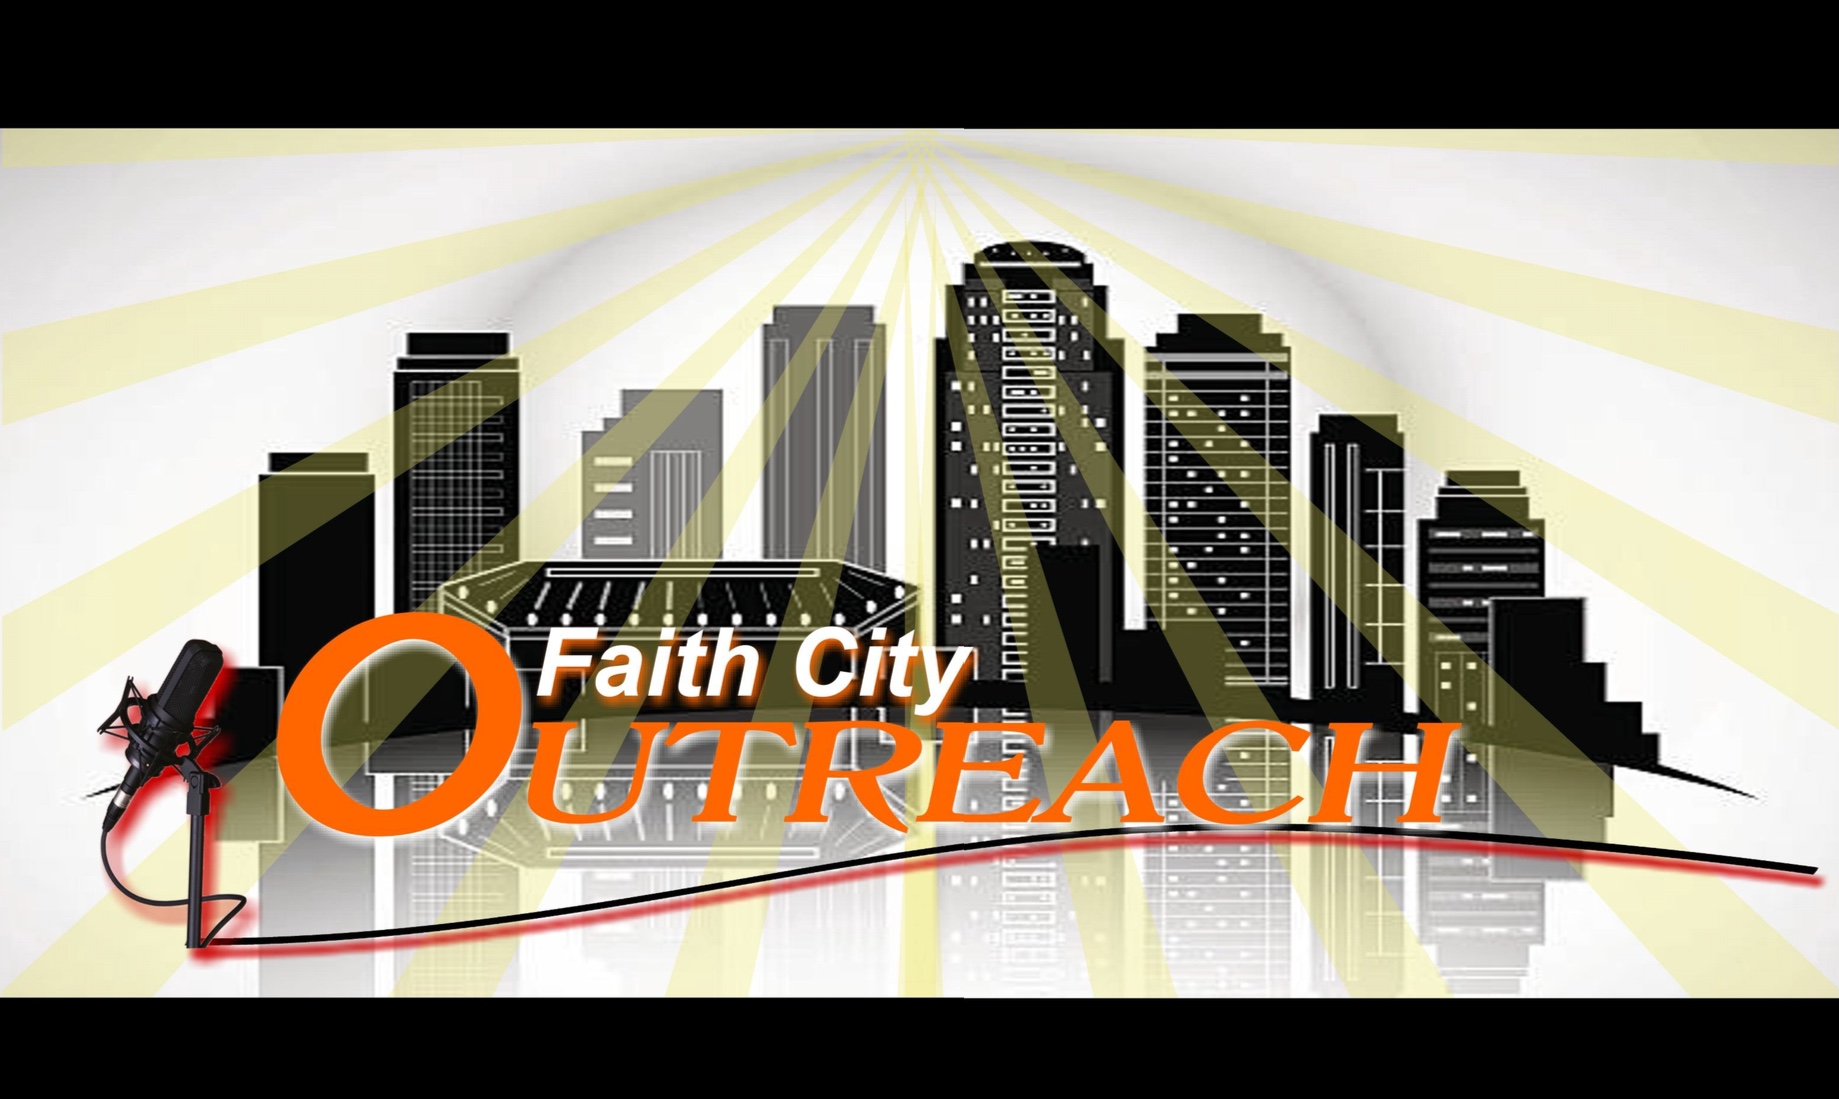 Faith City Outreach LLC